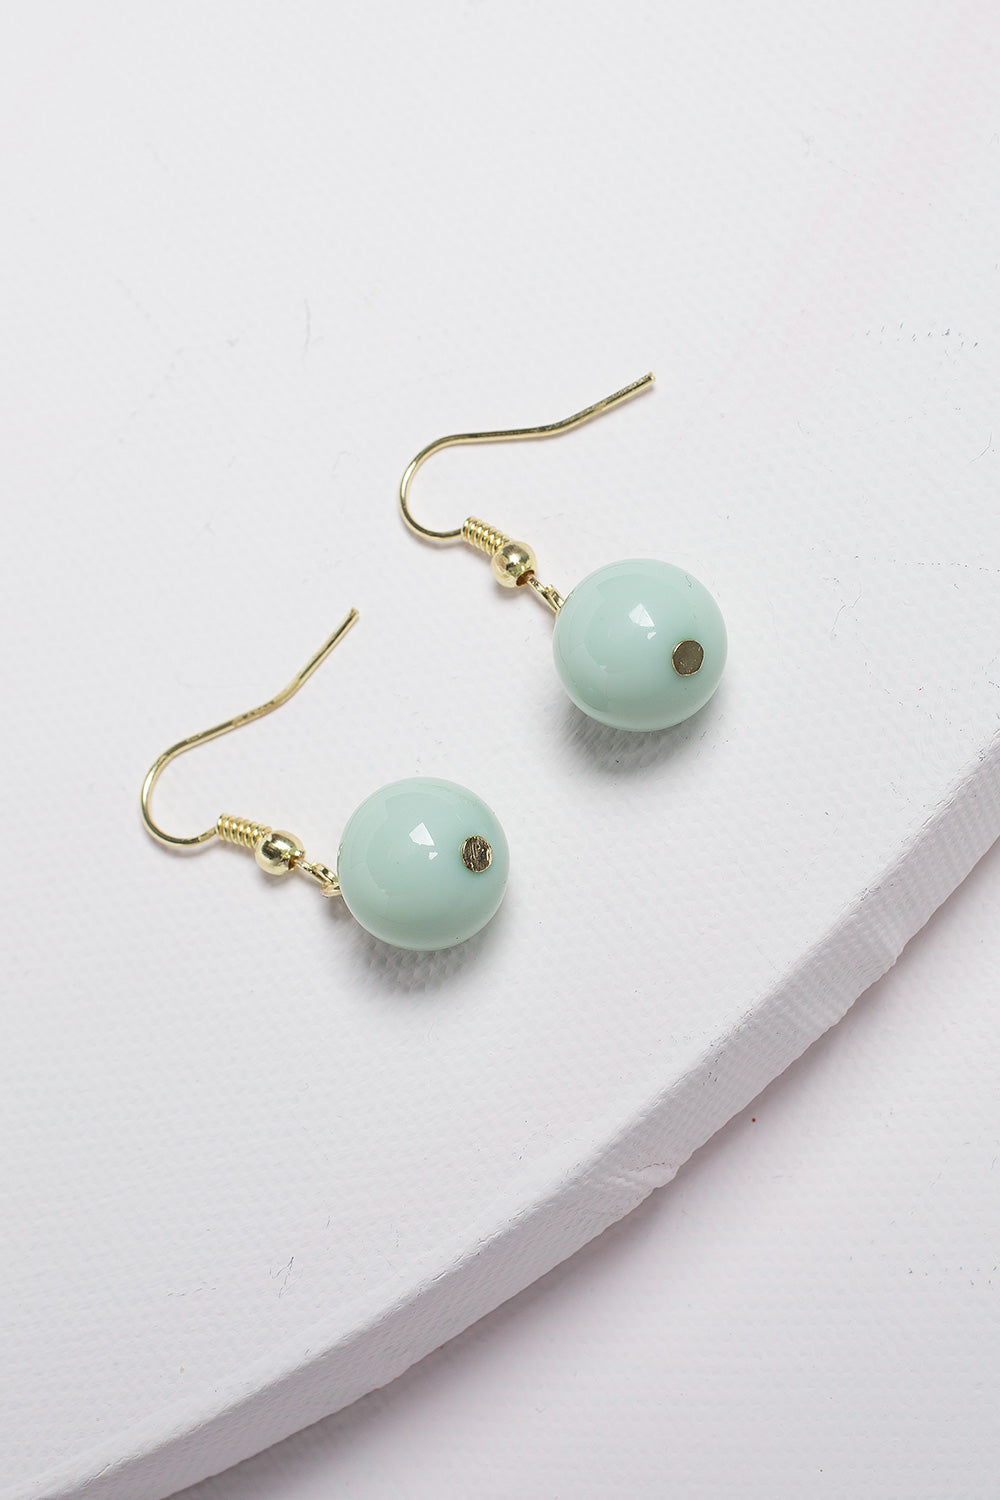 Type 1 Mega Mint Earrings